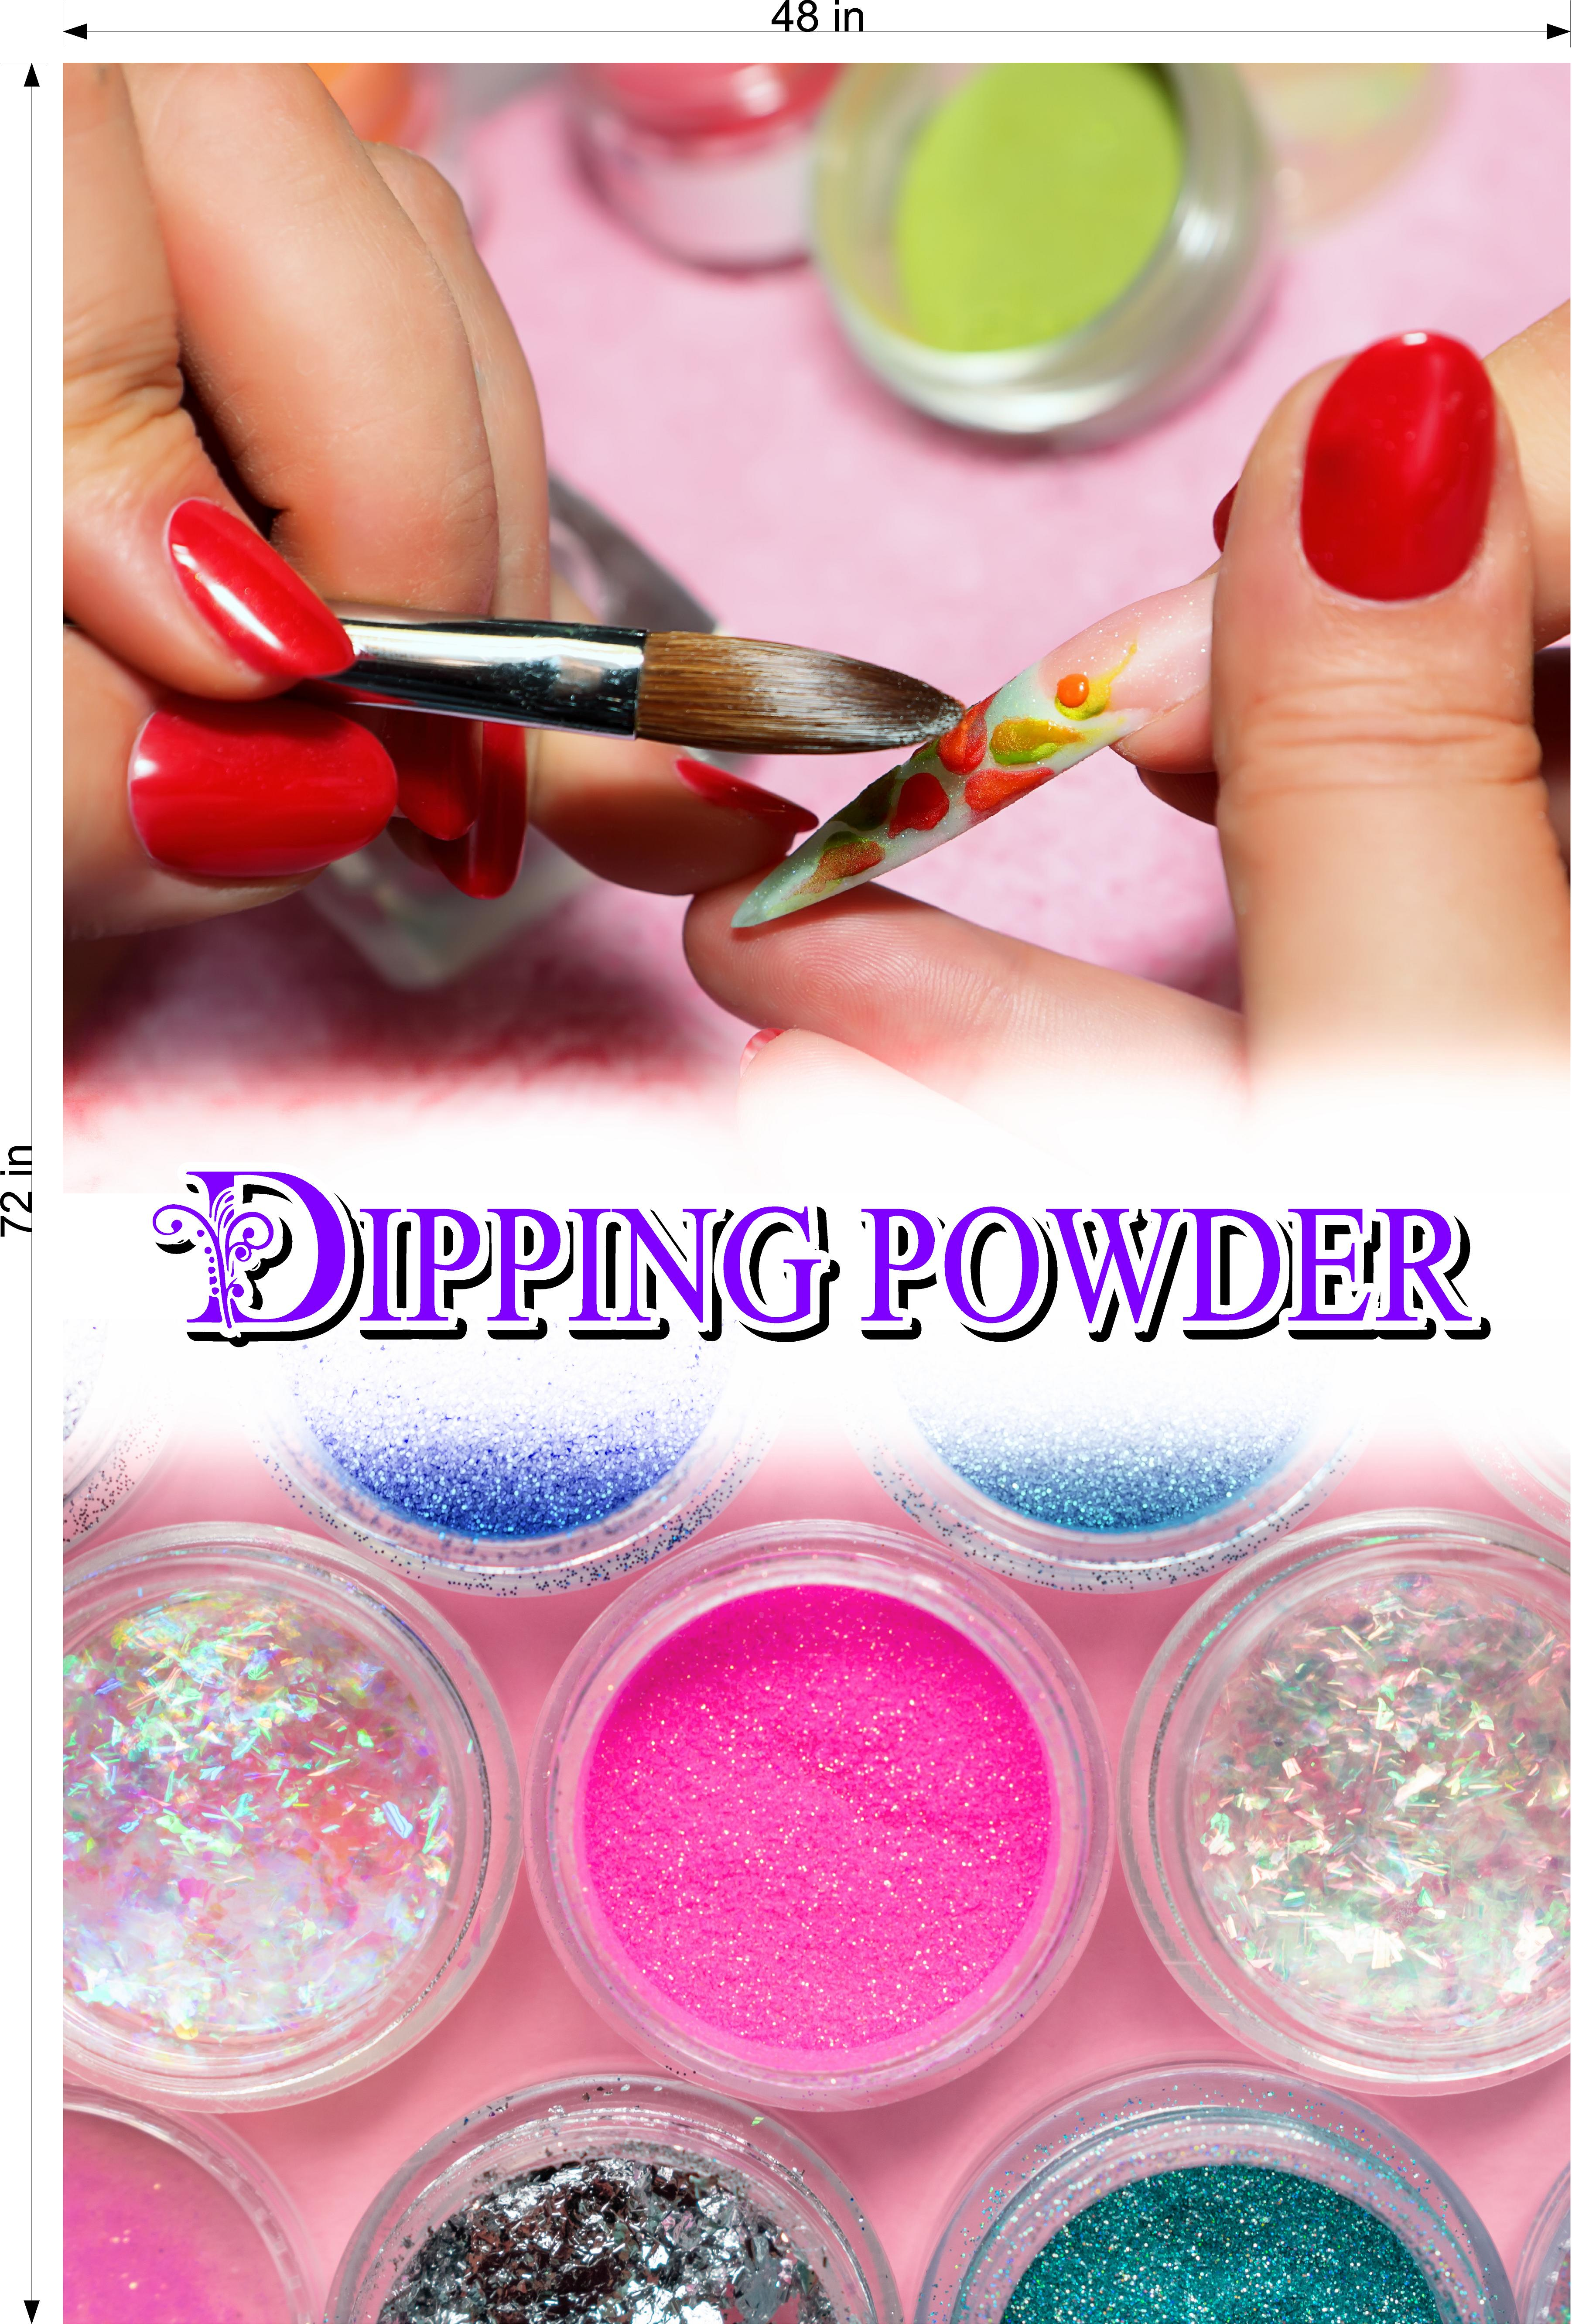 Dipping Powder 06 Photo-Realistic Paper Poster Premium Matte Interior Inside Sign Non-Laminated Nail Salon Vertical